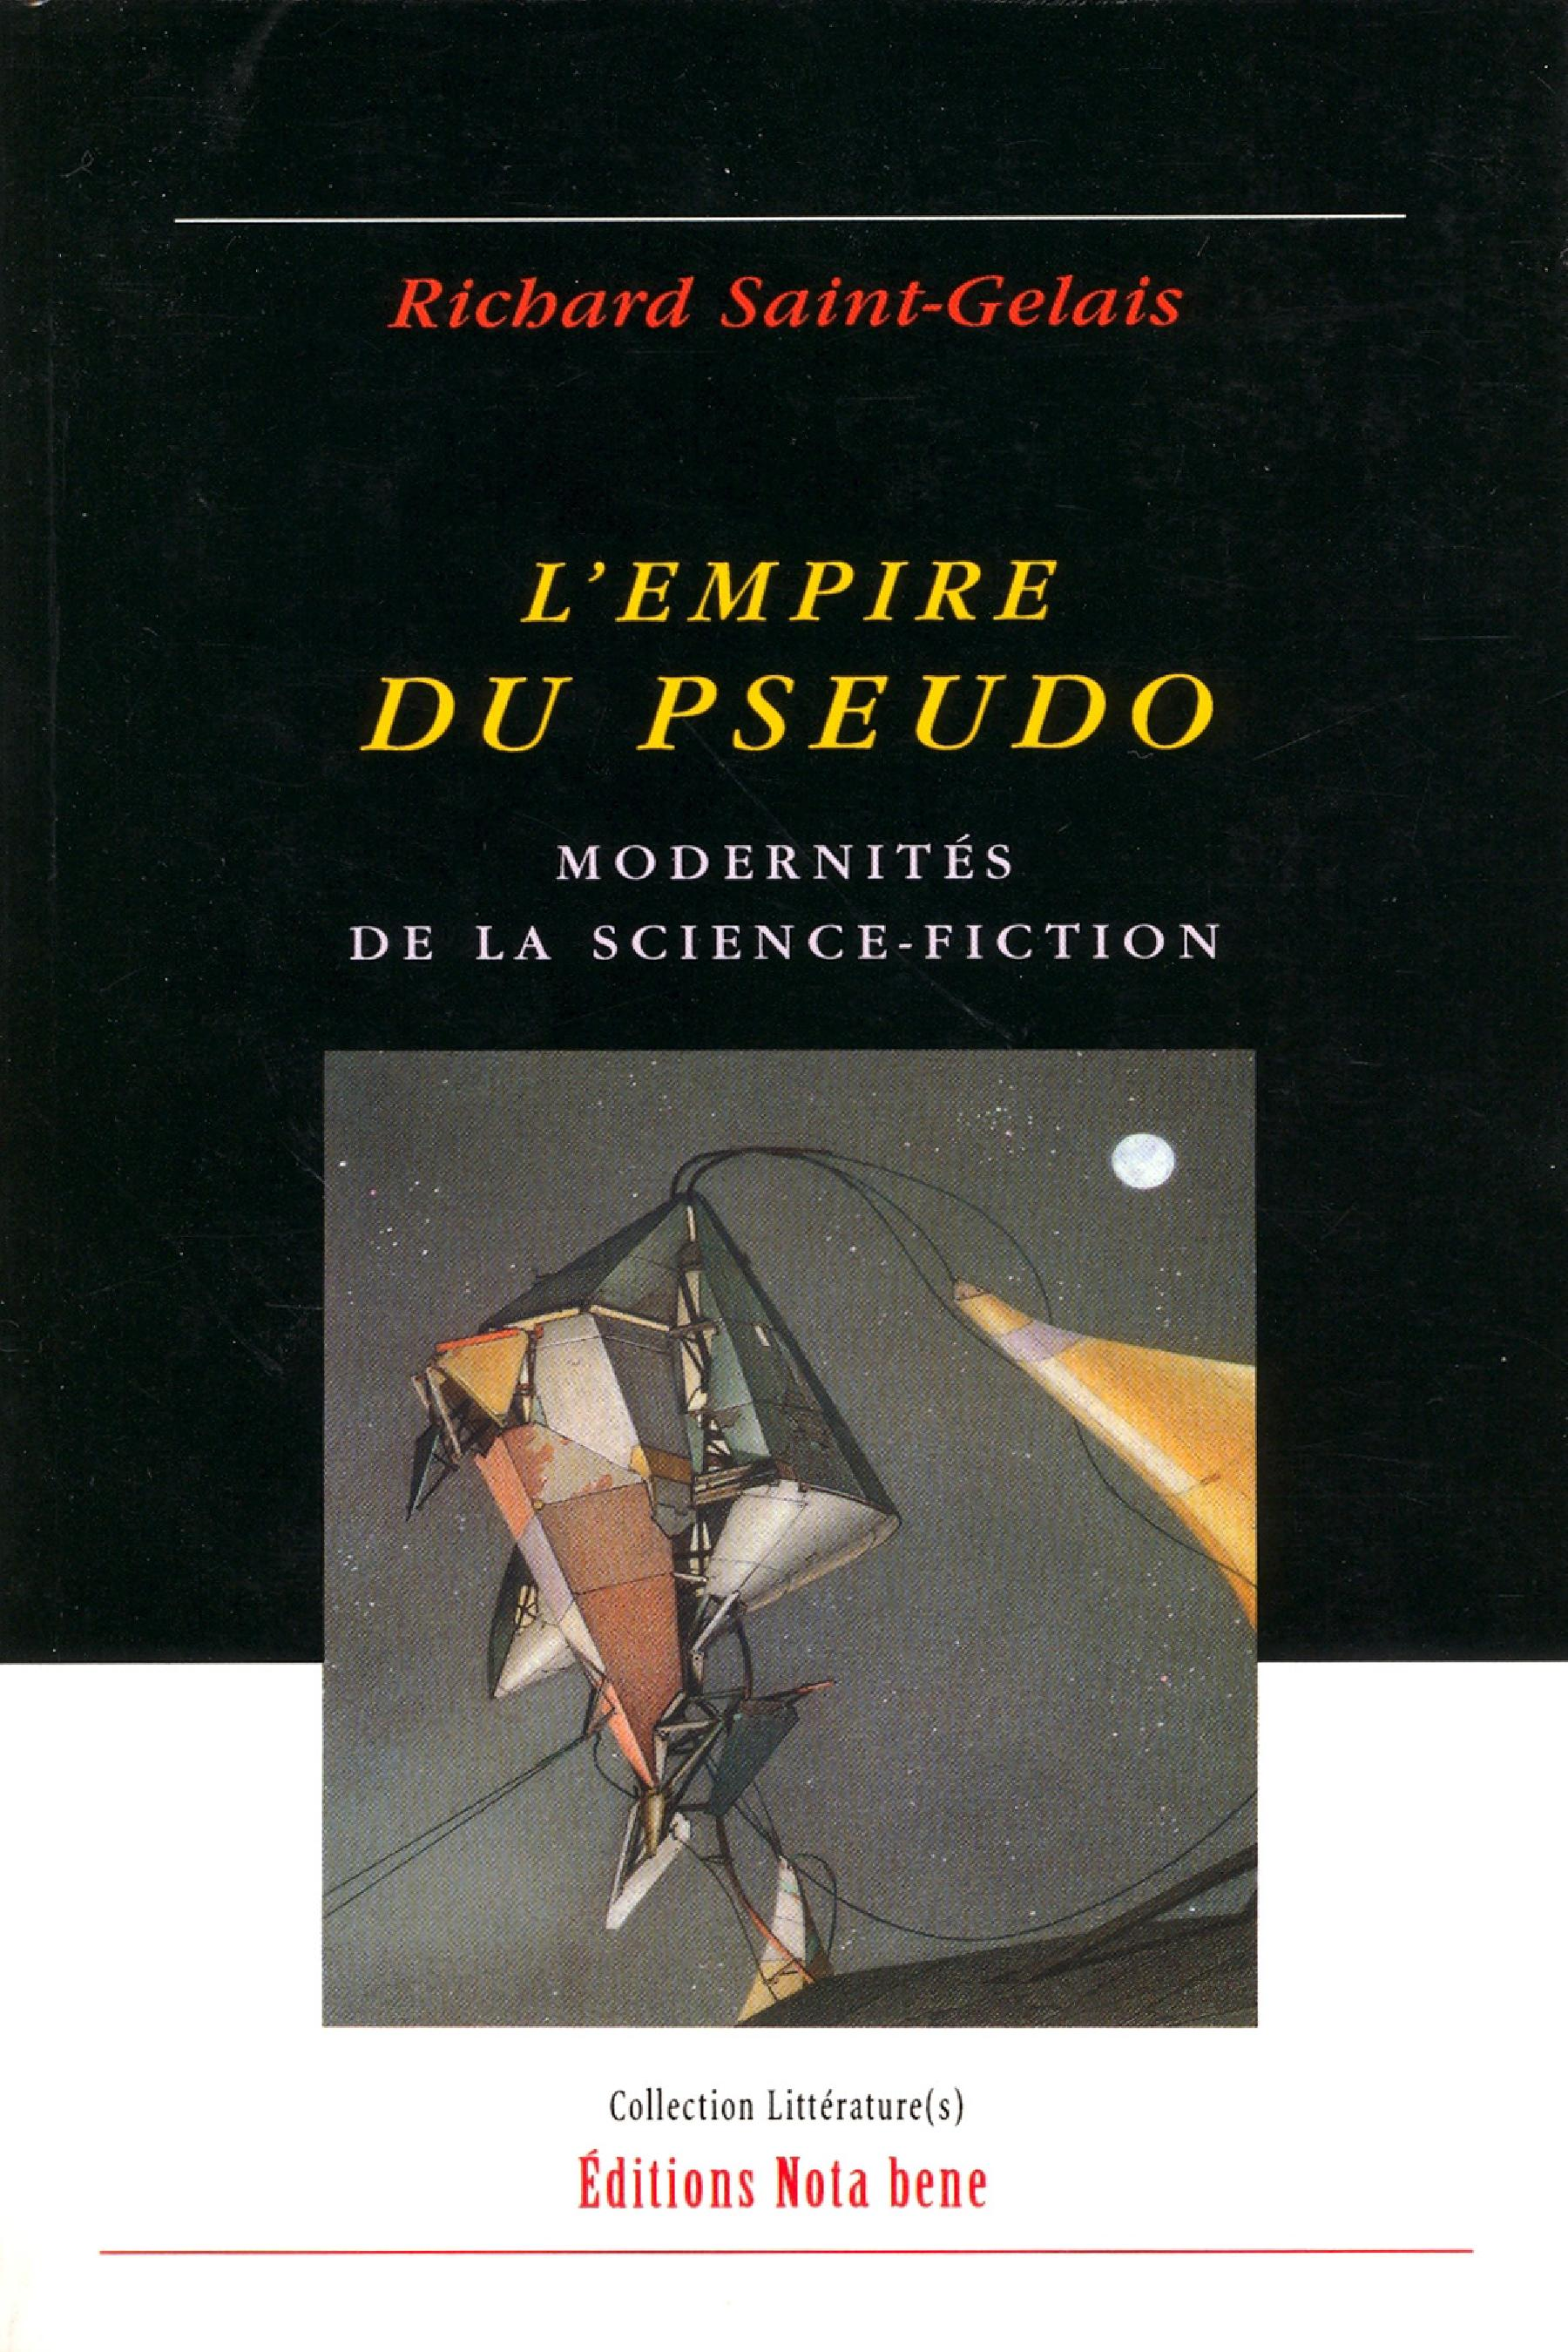 Vignette du livre Empire du pseudo (L') : Modernités de la science-fiction